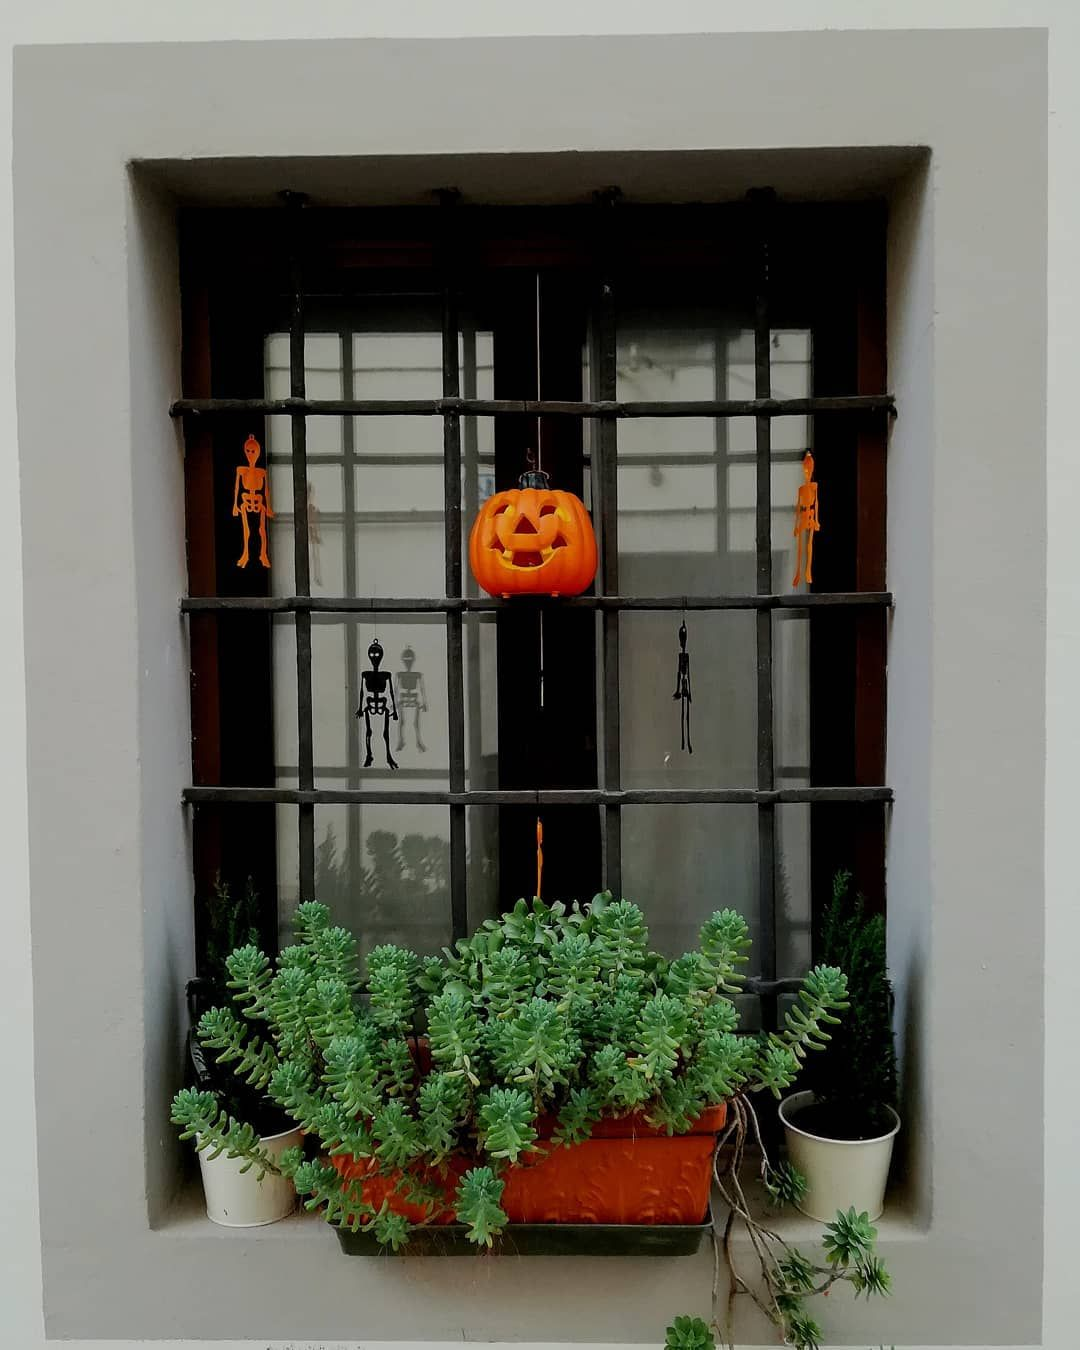 Rare Halloween Window Decorating Ideas You Canut Resist to Try in